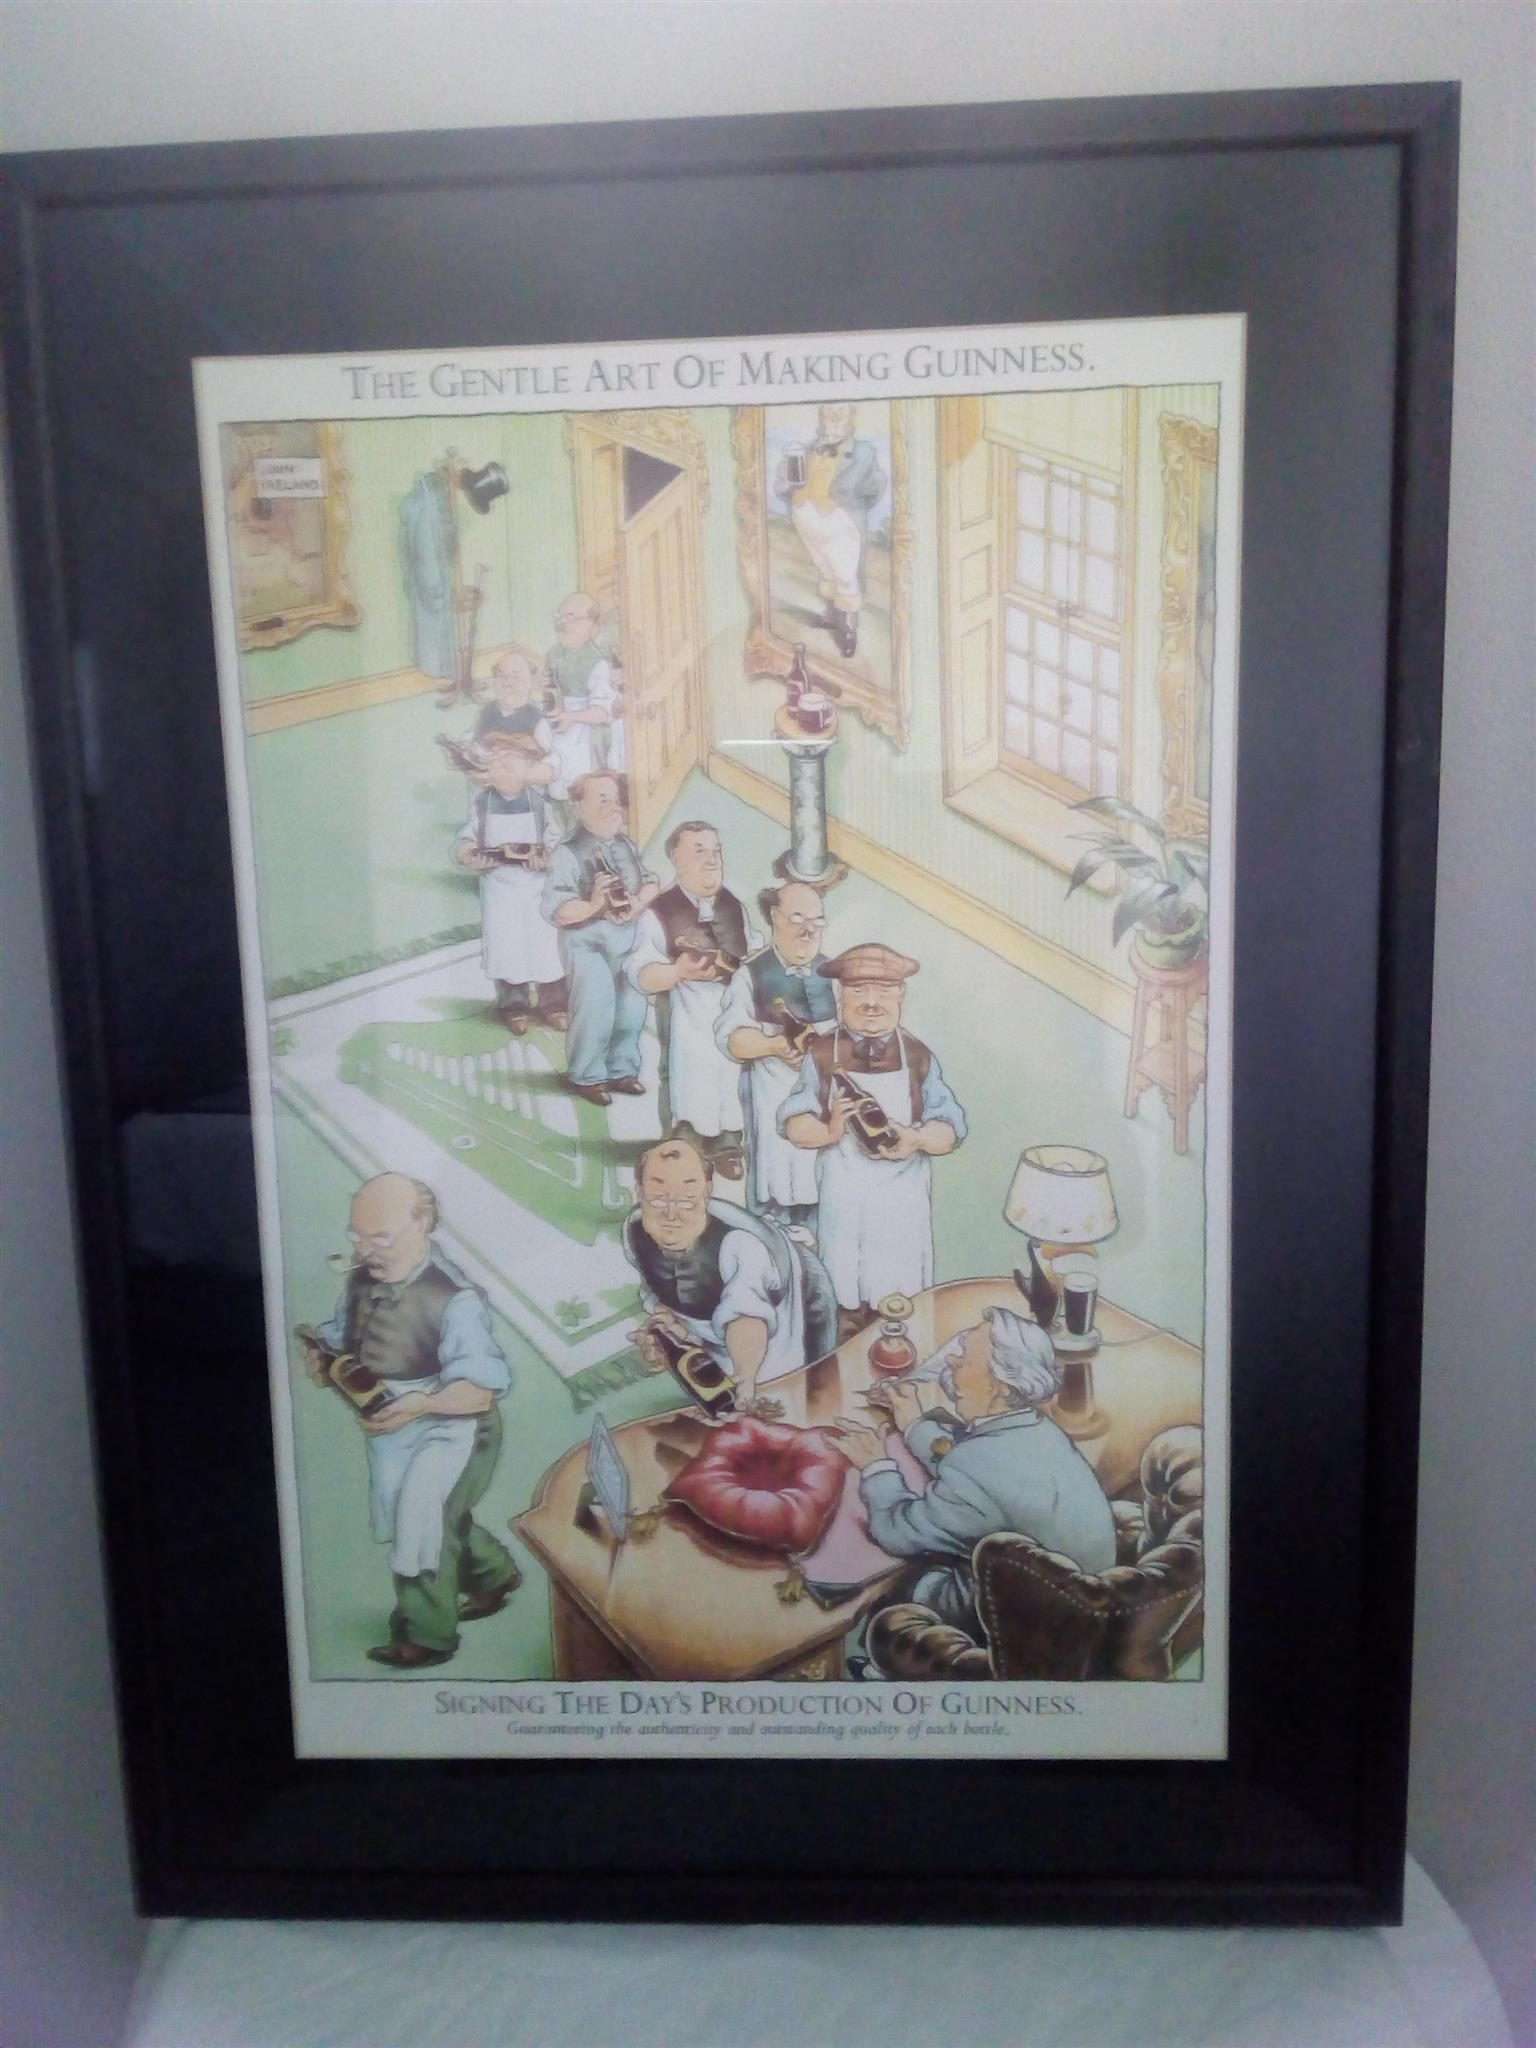 A complete set of 12 glass framed pictures (January - December) reprinted from The Gentle Art of Making Guinness Calendar.